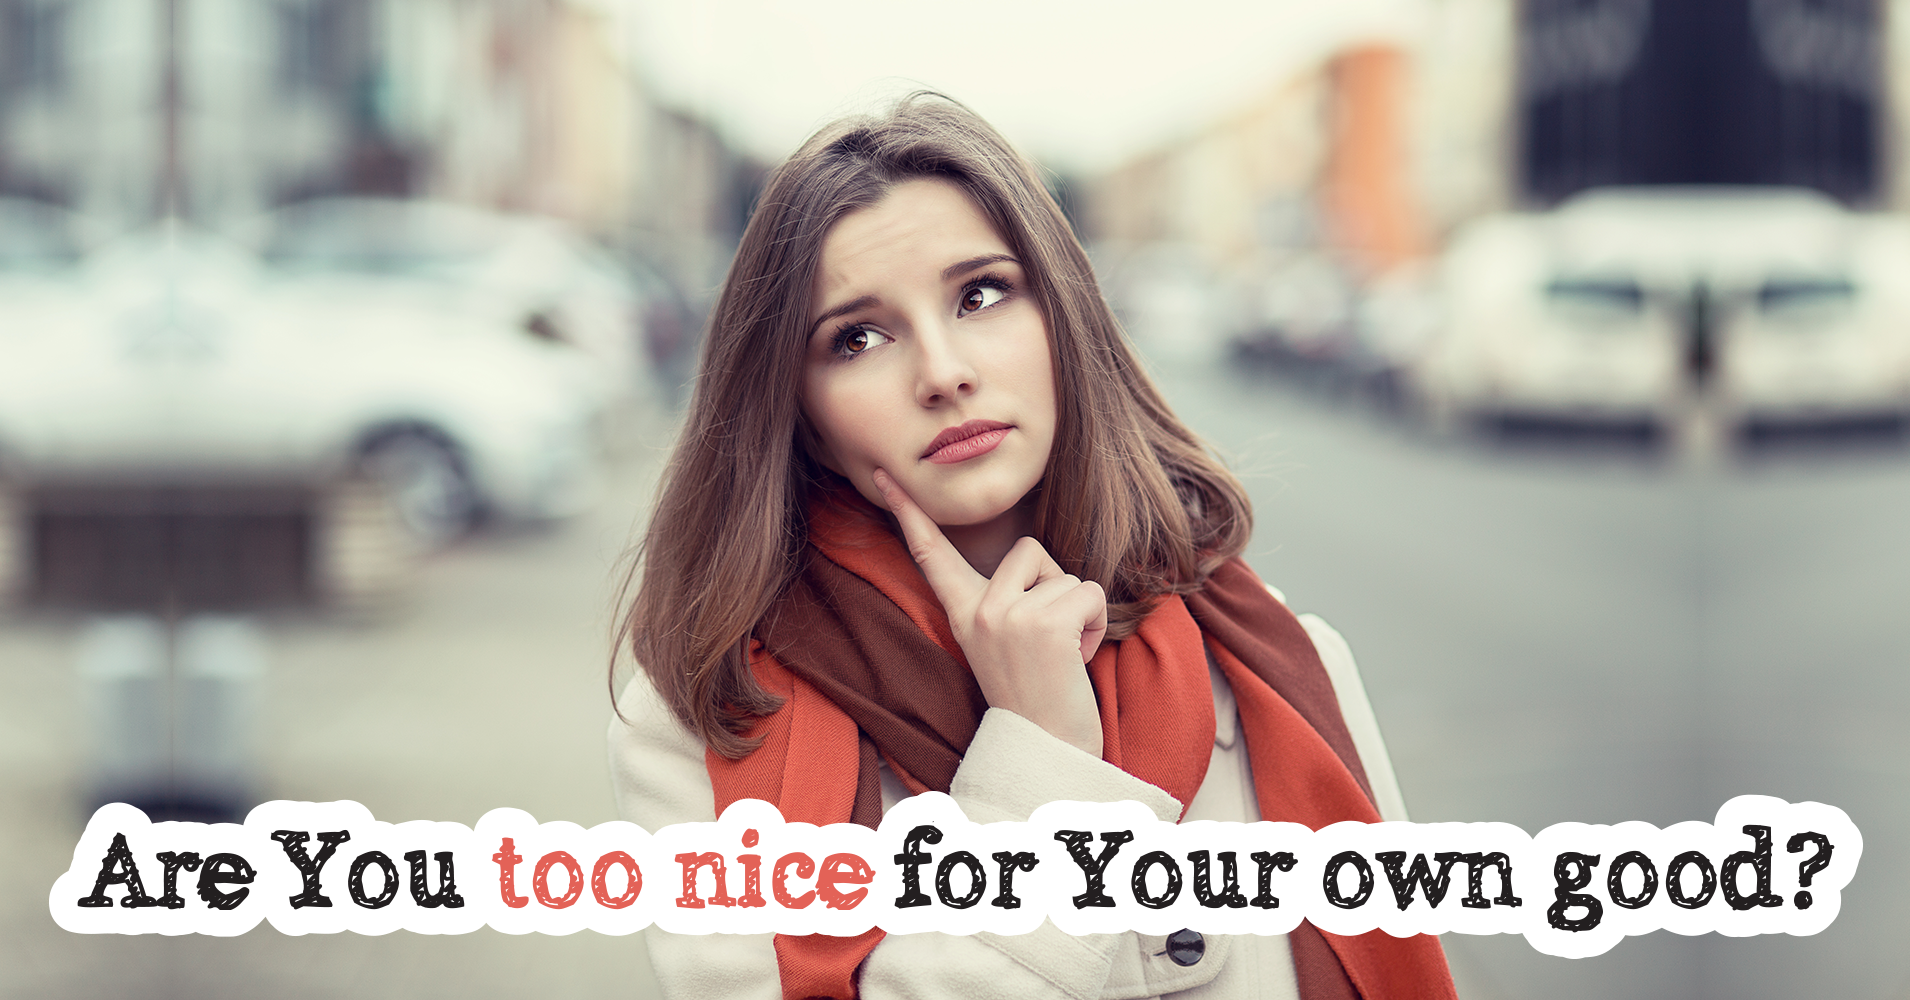 Are You Too Nice For Your Own Good? - Quiz - Quizony.com